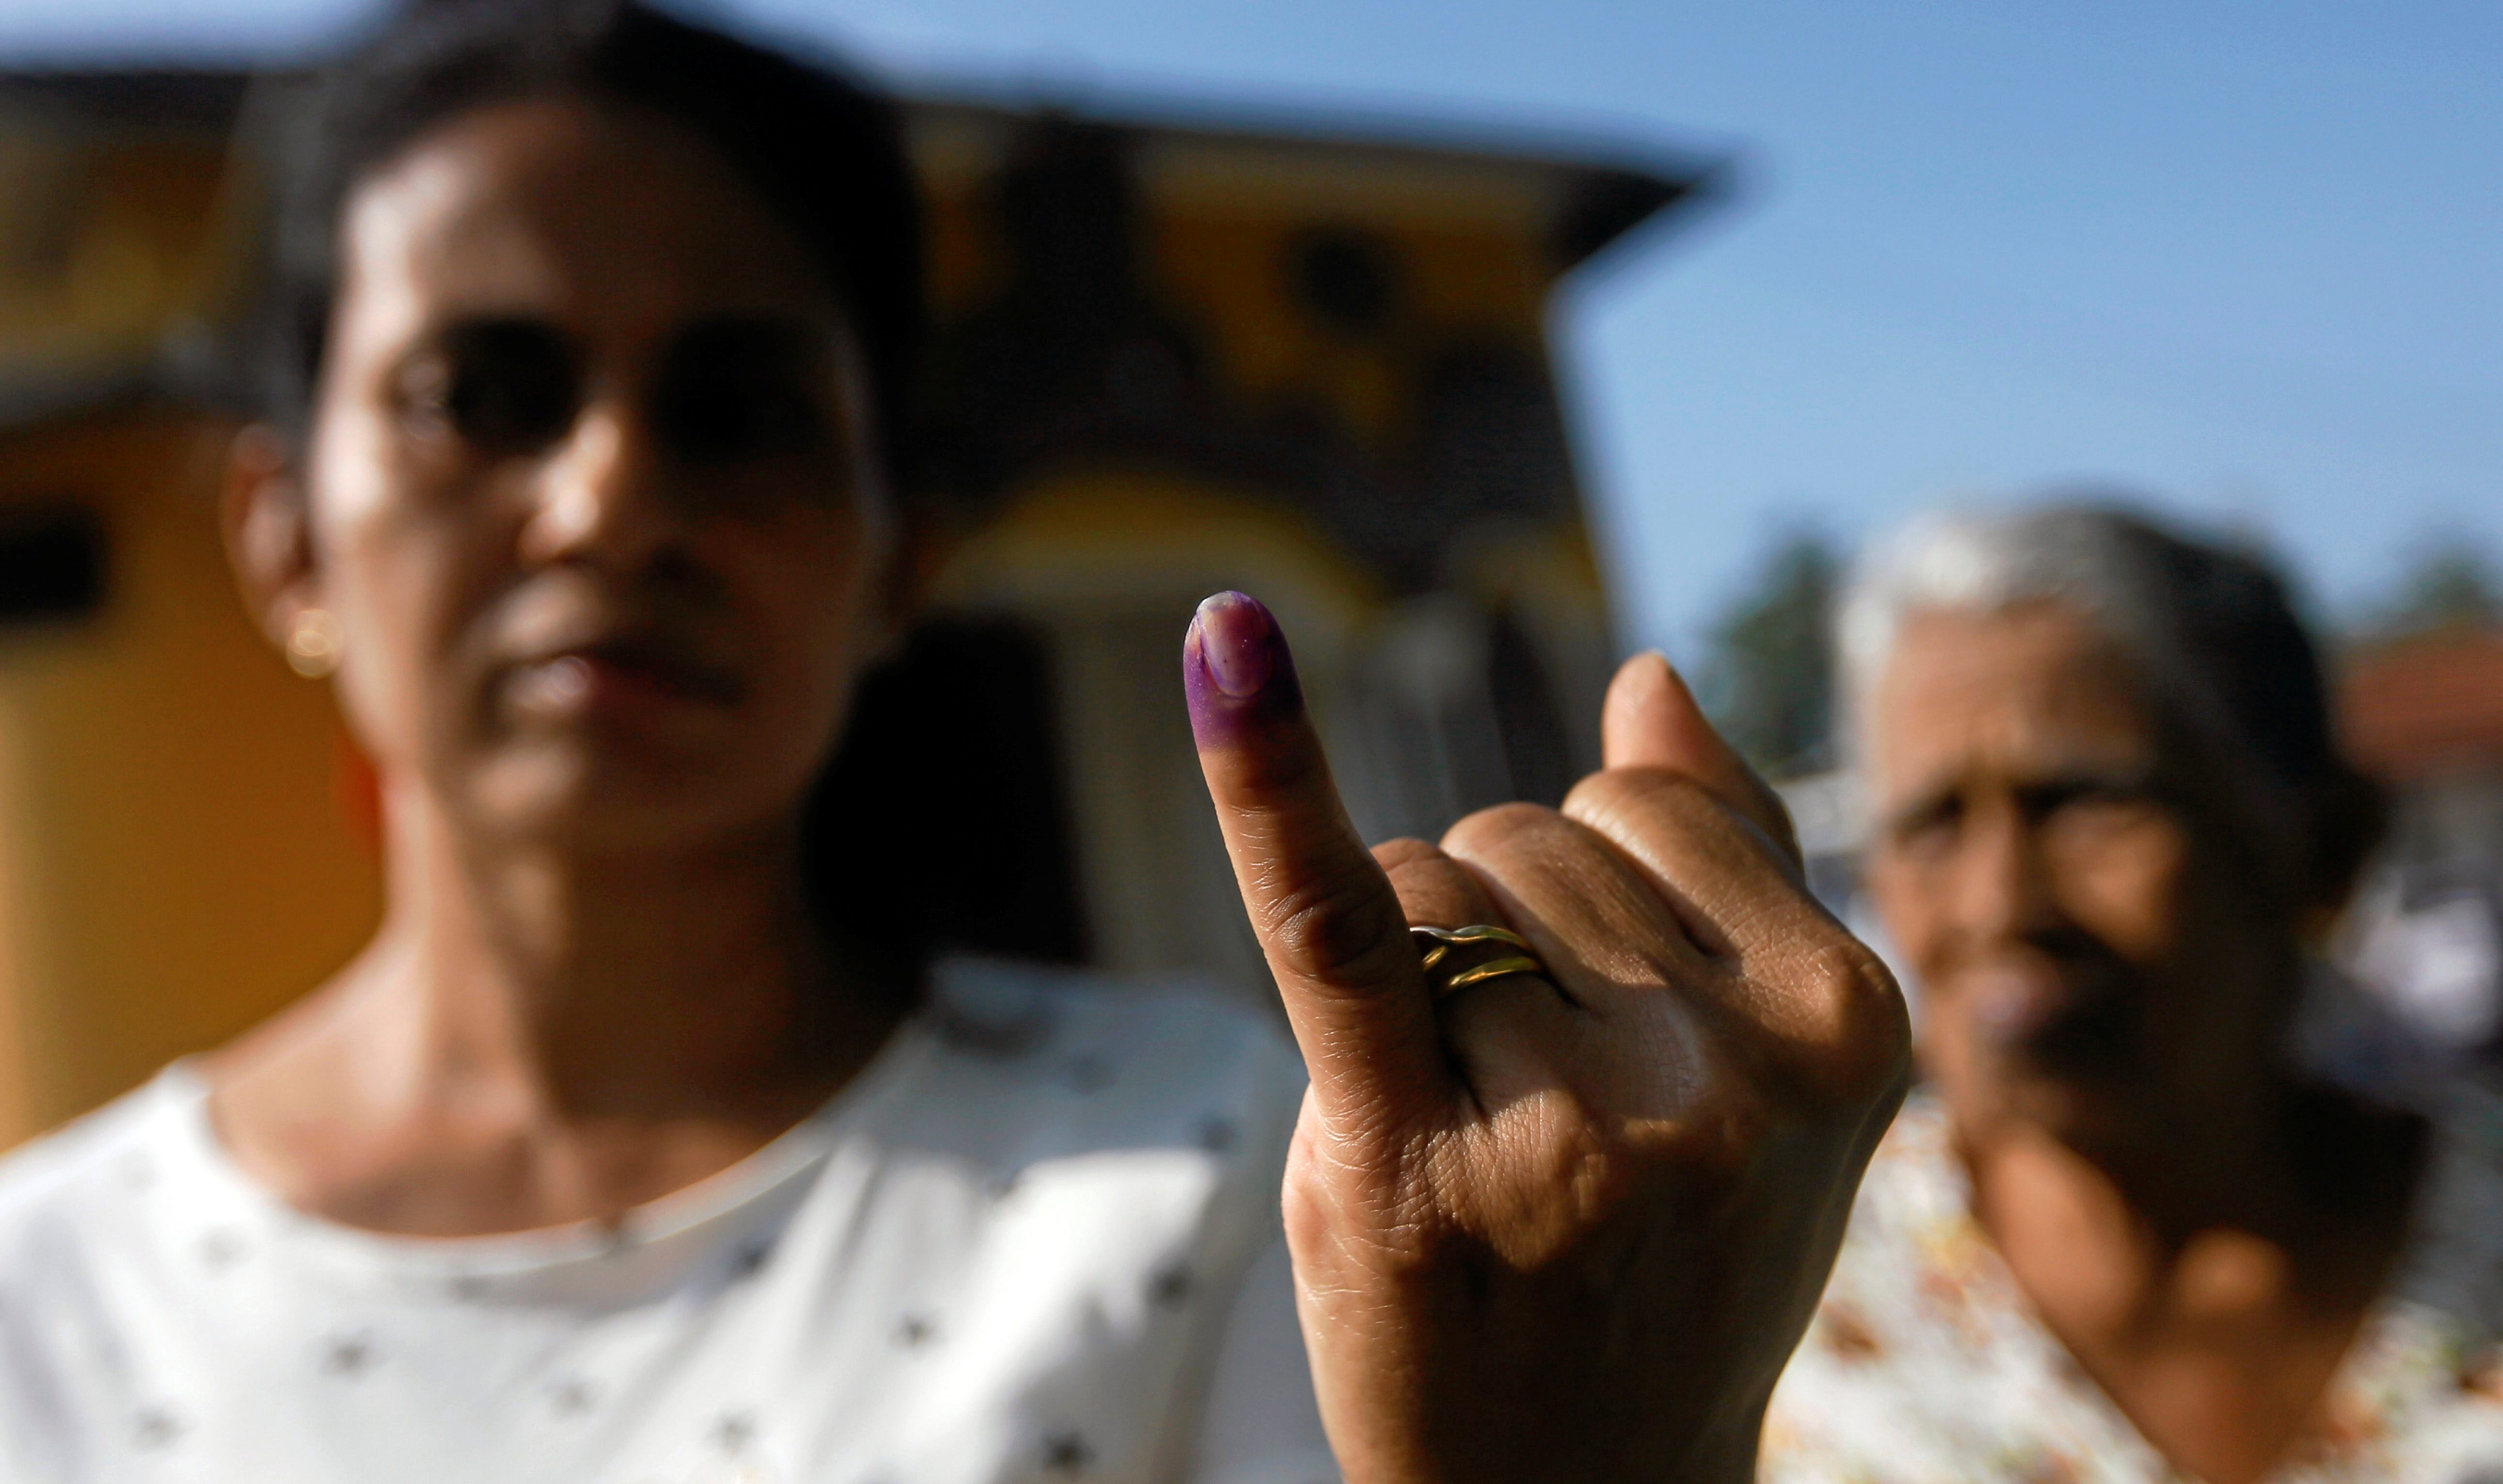 A woman shows her ink-stained finger after casting her vote at a polling station during the long-delayed local government elections in Colombo, Sri Lanka February 10, 2018.